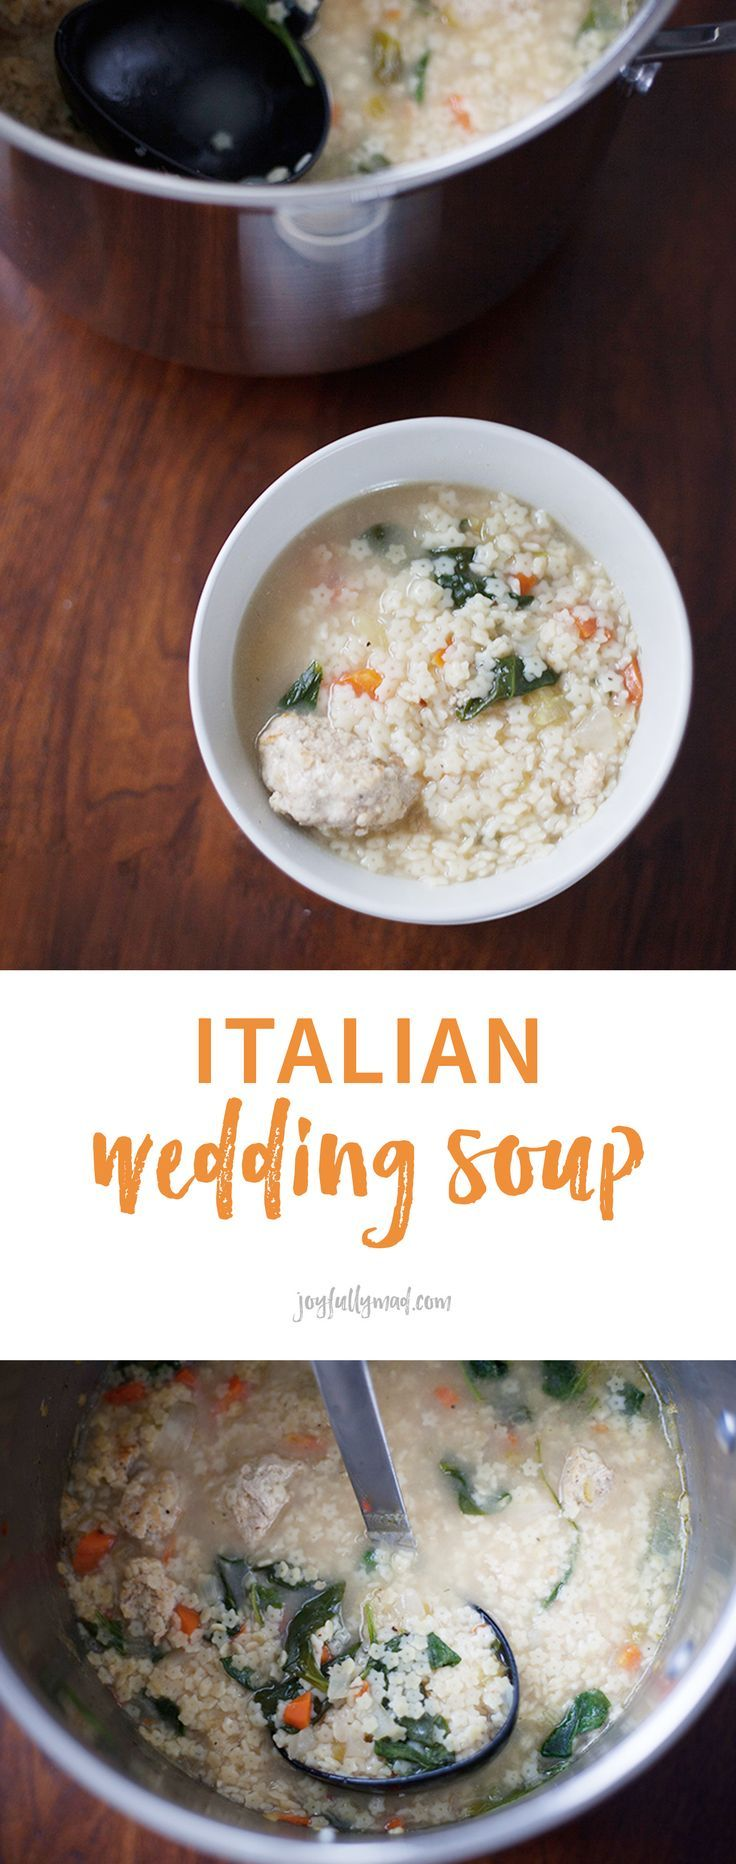 This quick Italian Wedding Soup recipe is perfect for any time of year! Make it in less than an hour and have a batch for the week.